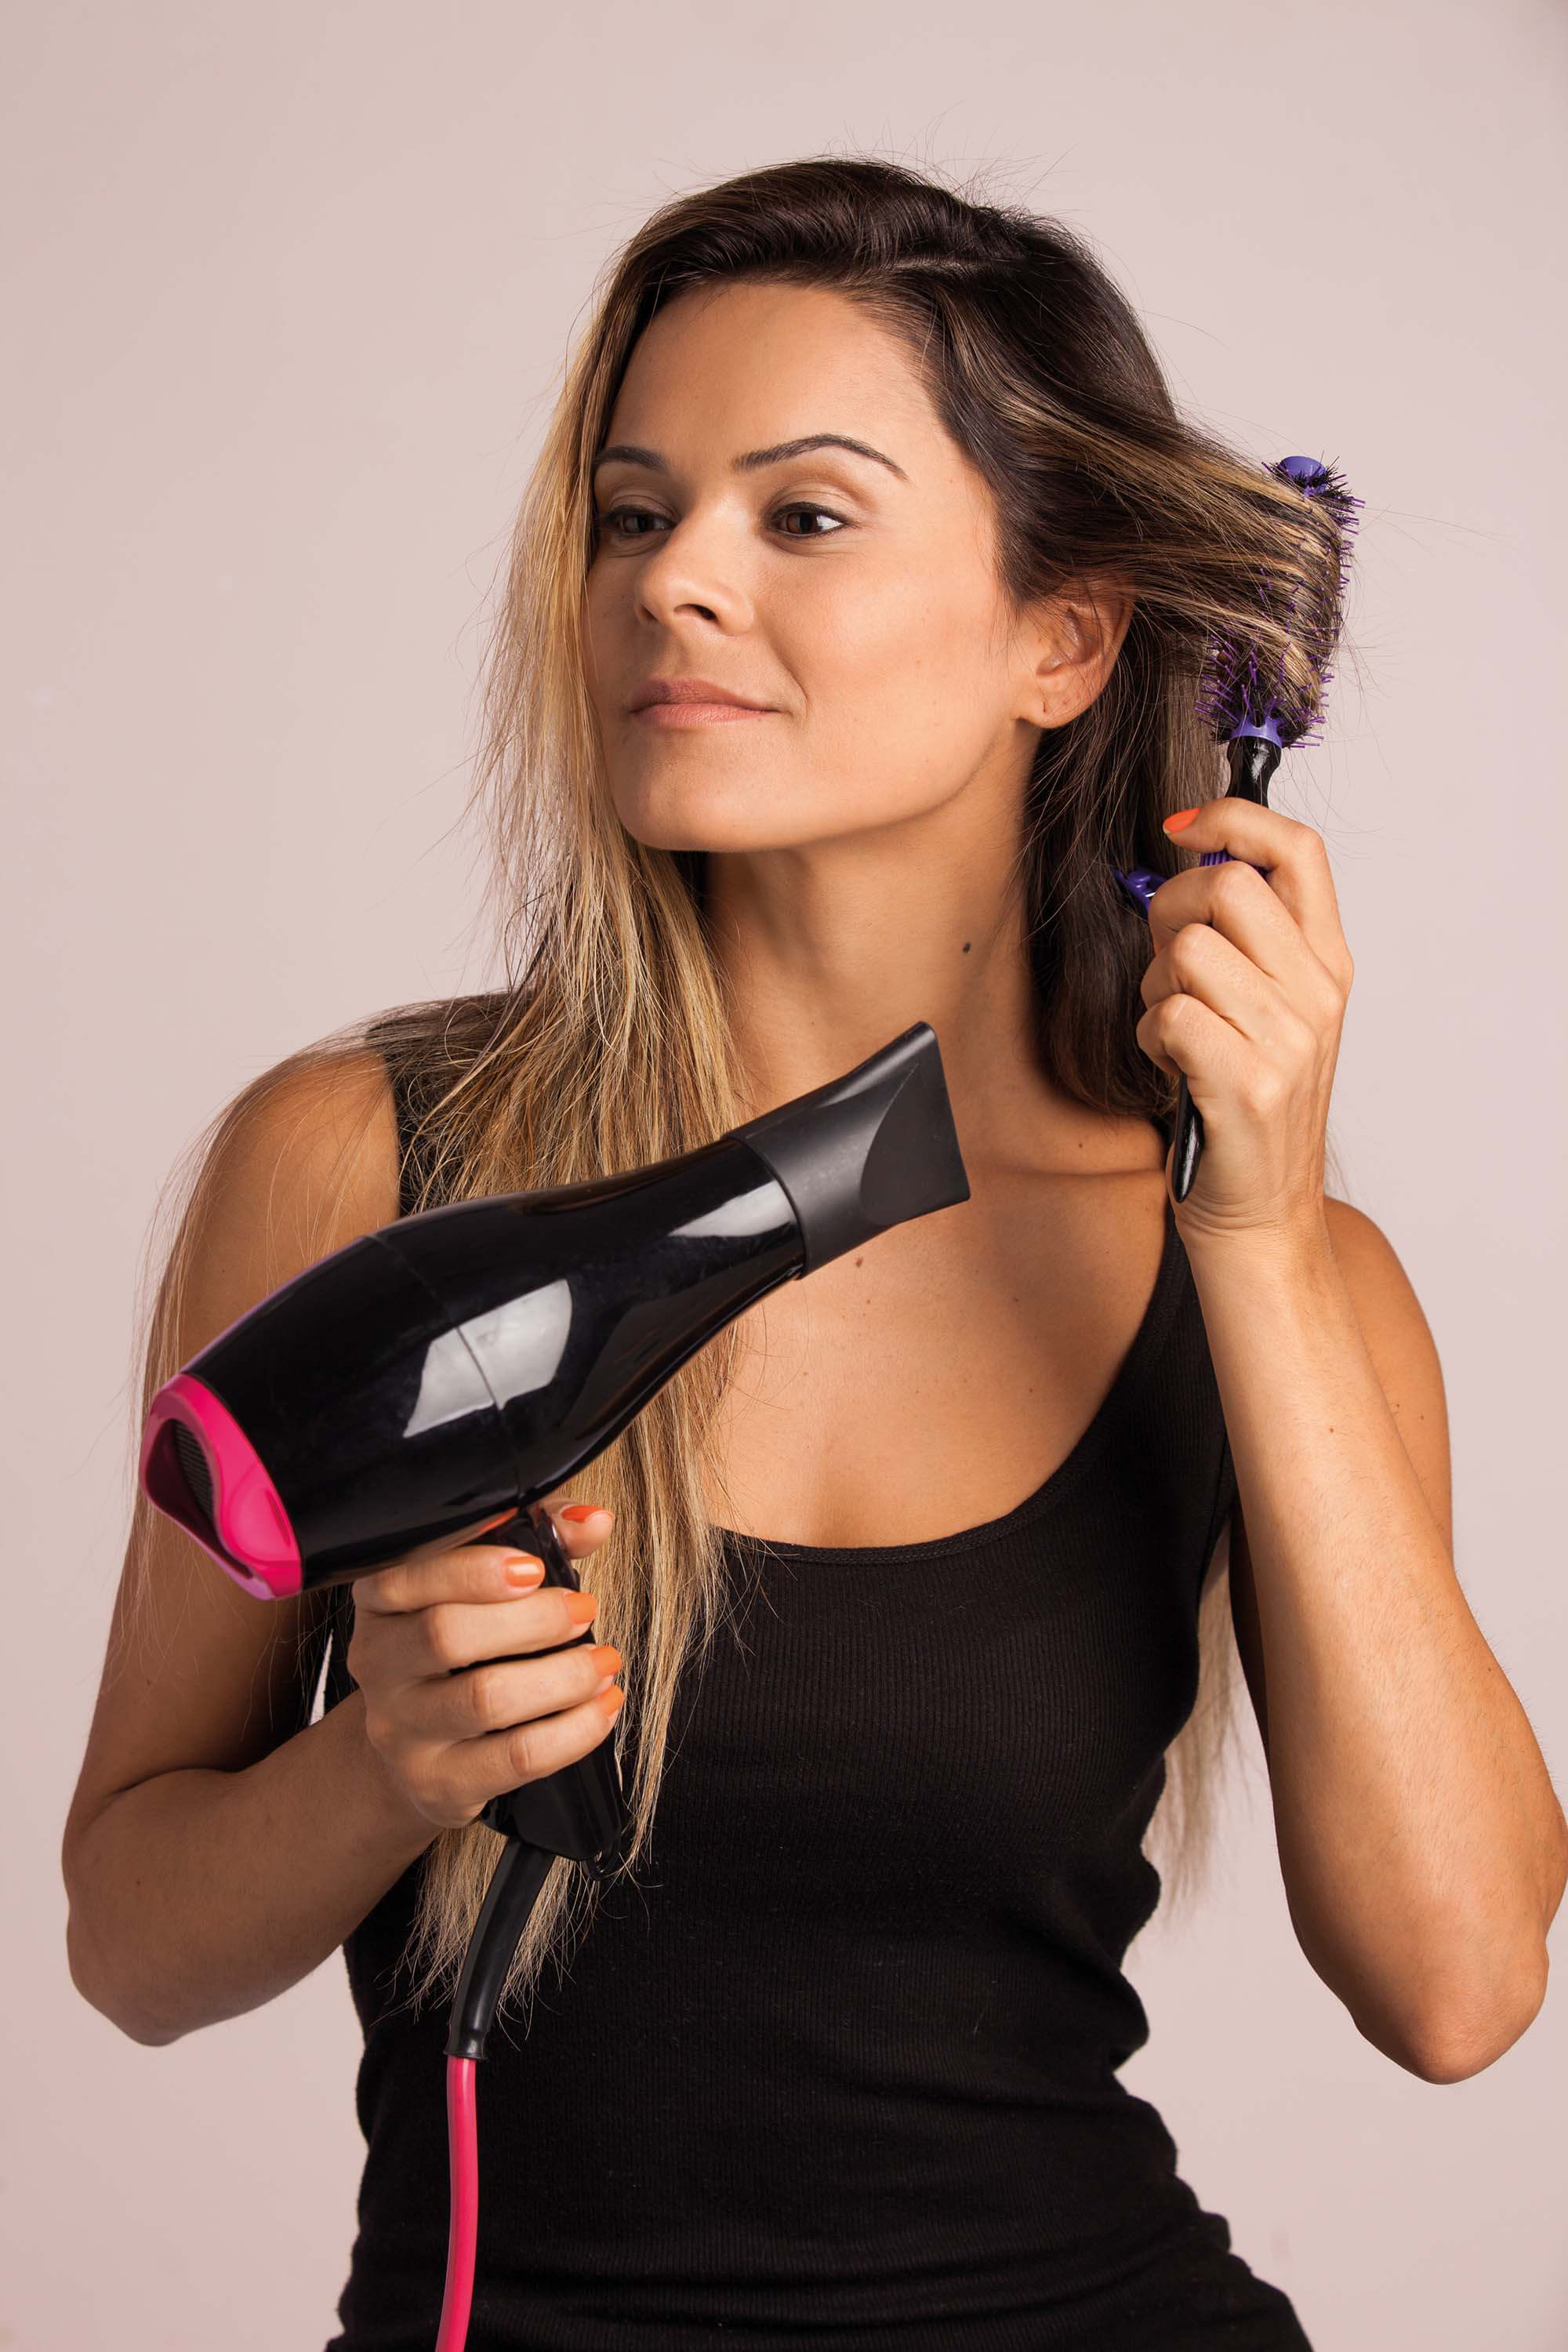 How to use a hairdryer